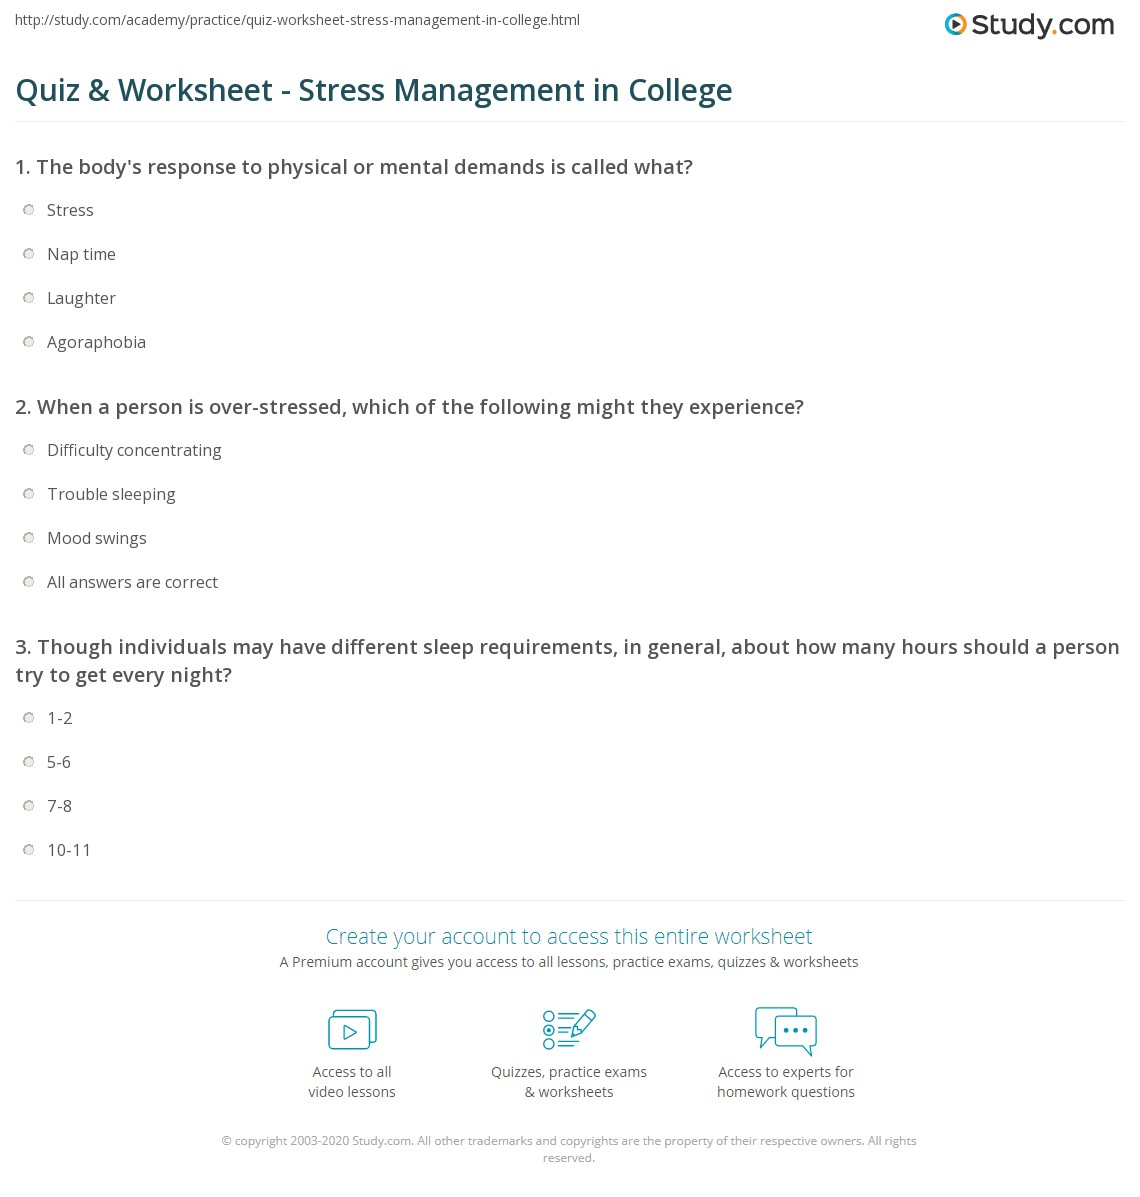 Worksheets Time Management Worksheets For College Students time management worksheets for college students free articles on time